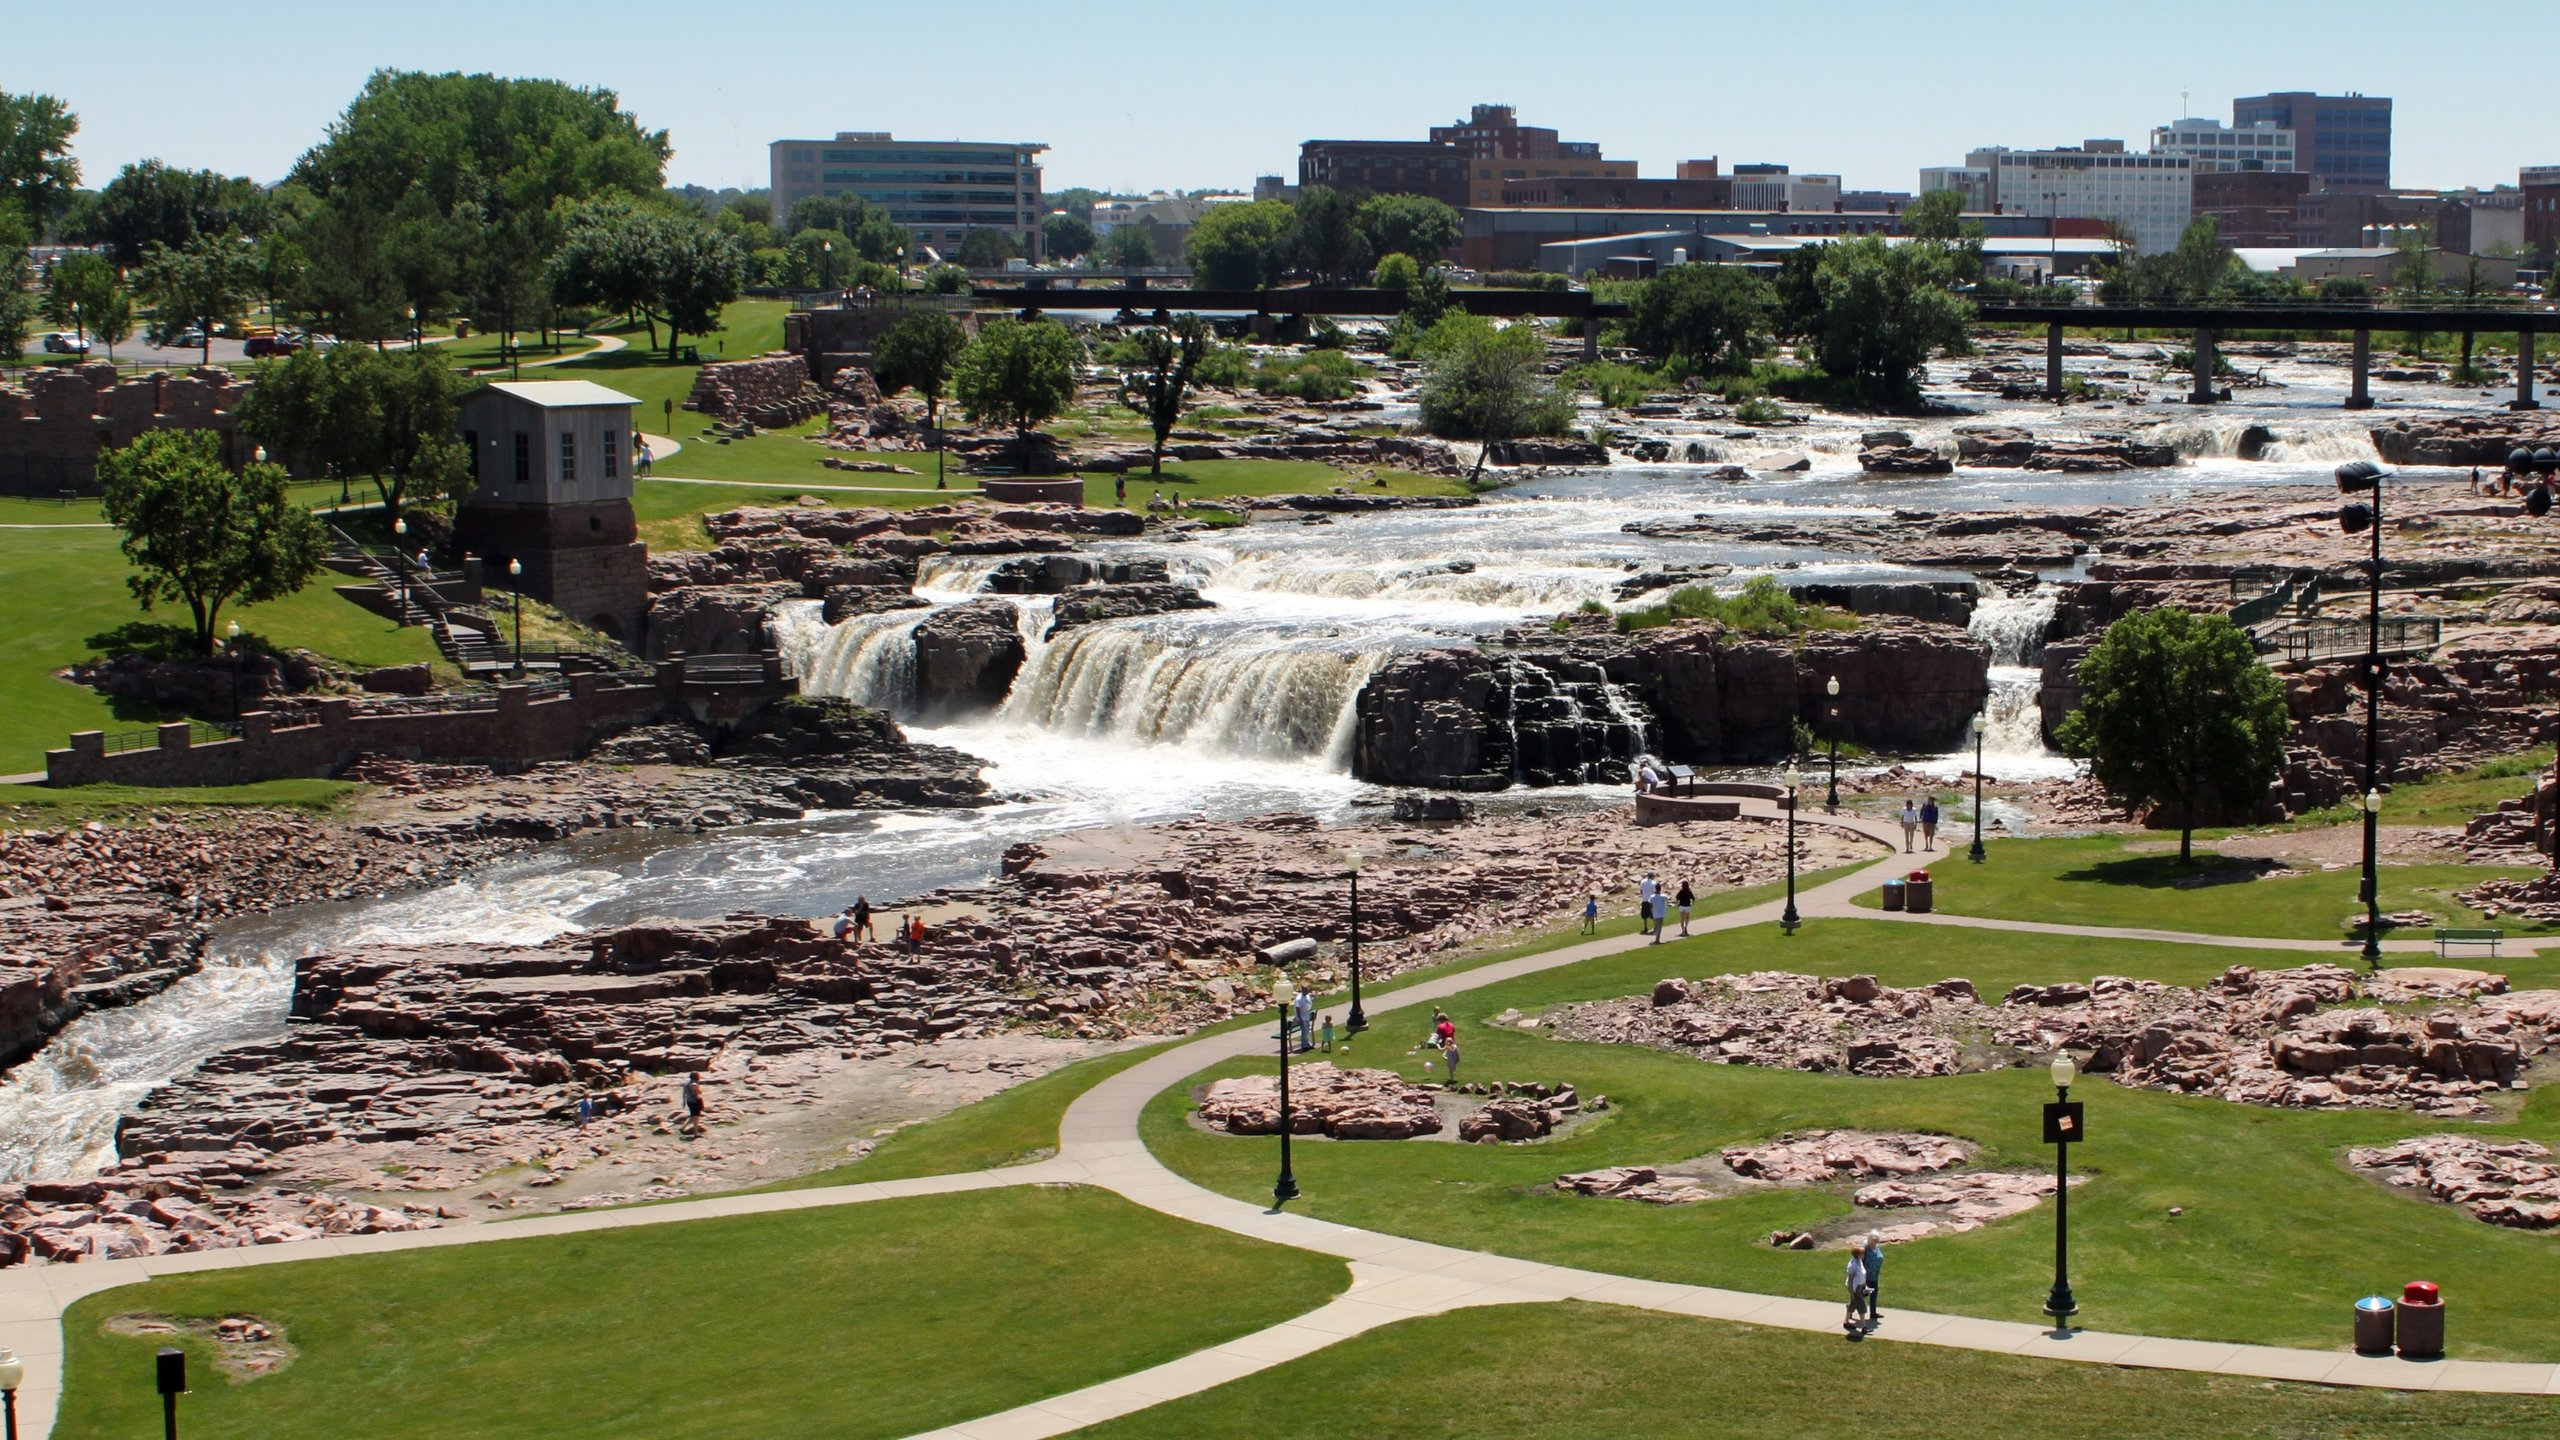 Top Hotels In Sioux Falls Sd From 48 Free Cancellation On Select Hotels Expedia